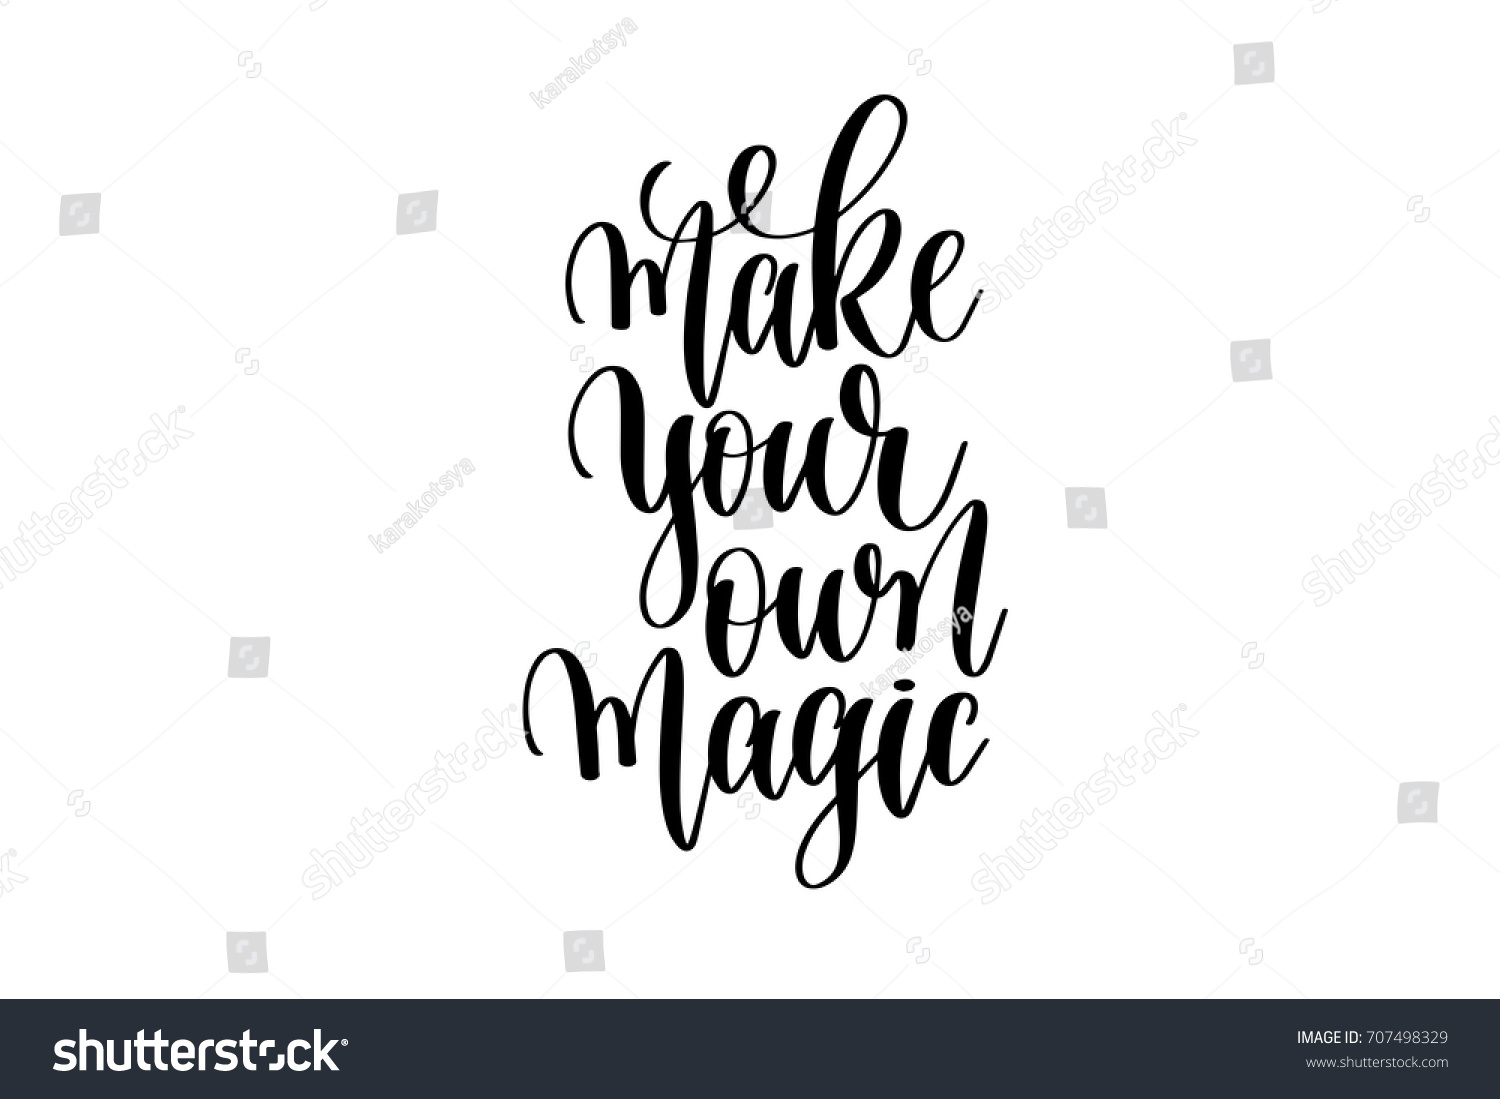 Make your own magic hand written stock vector 707498329 shutterstock make your own magic hand written lettering positive quote to poster greeting card kristyandbryce Images